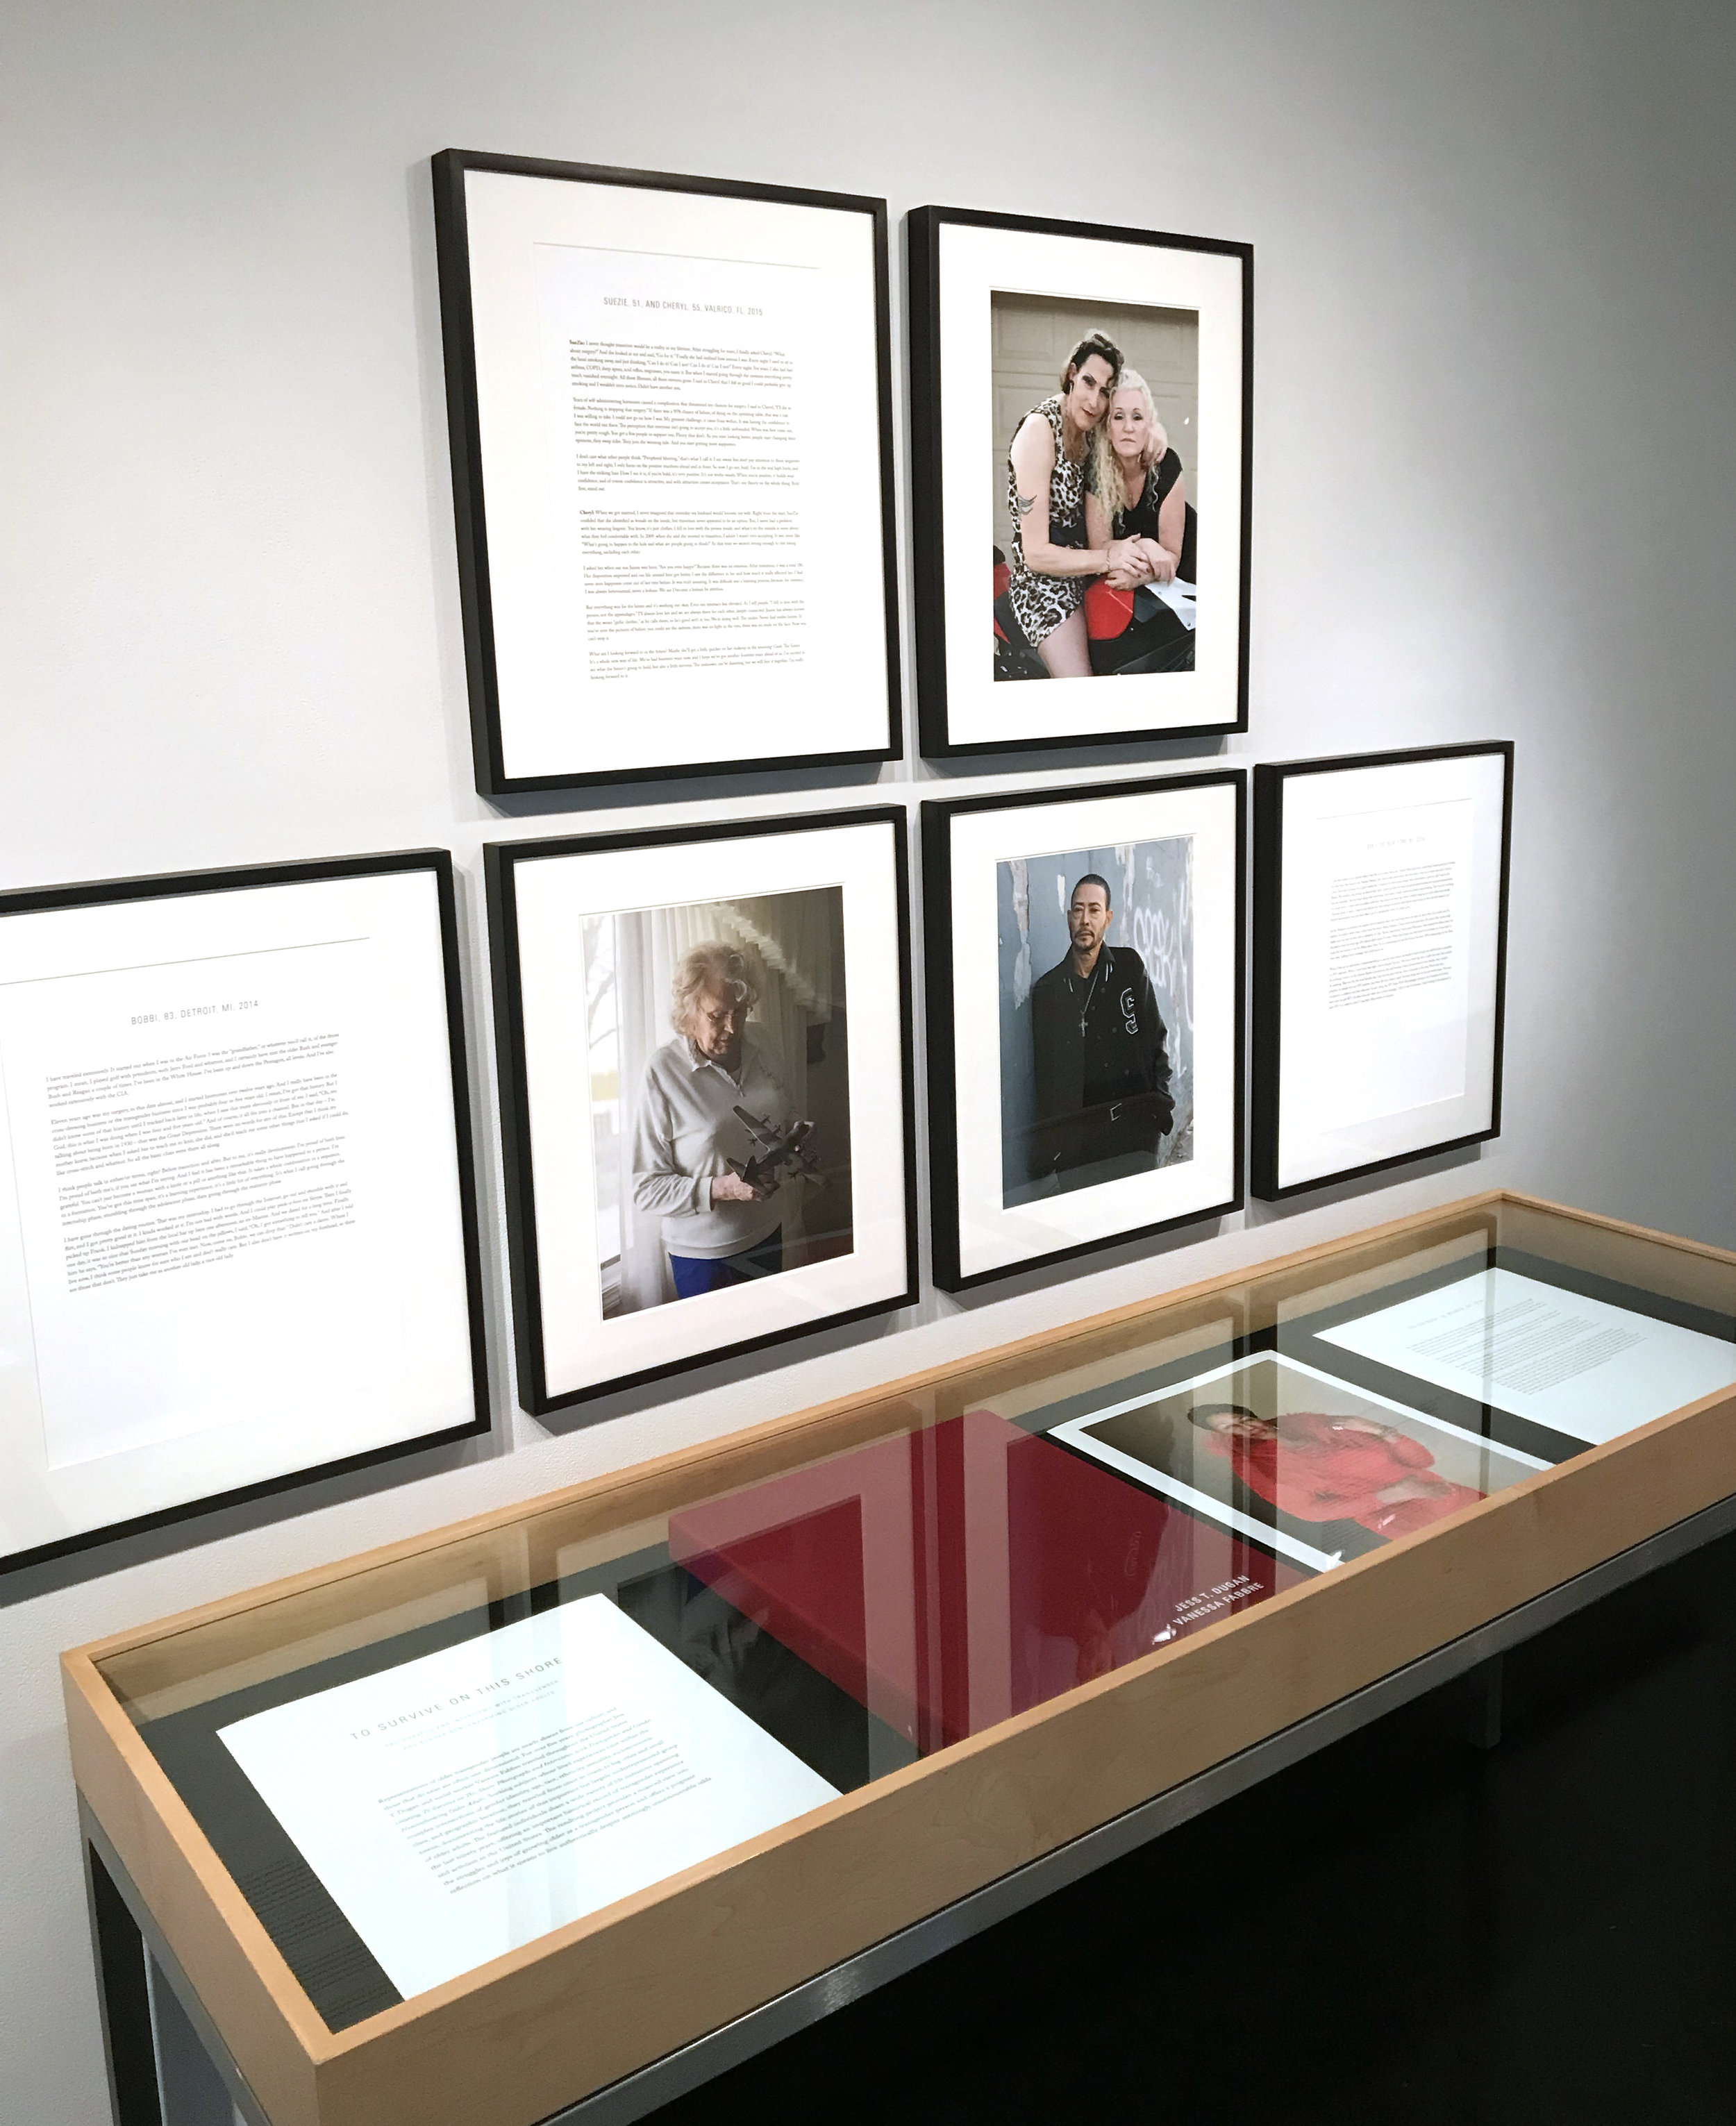 Installation view of the portfolio at the Tang Teaching Museum at Skidmore College, 2018